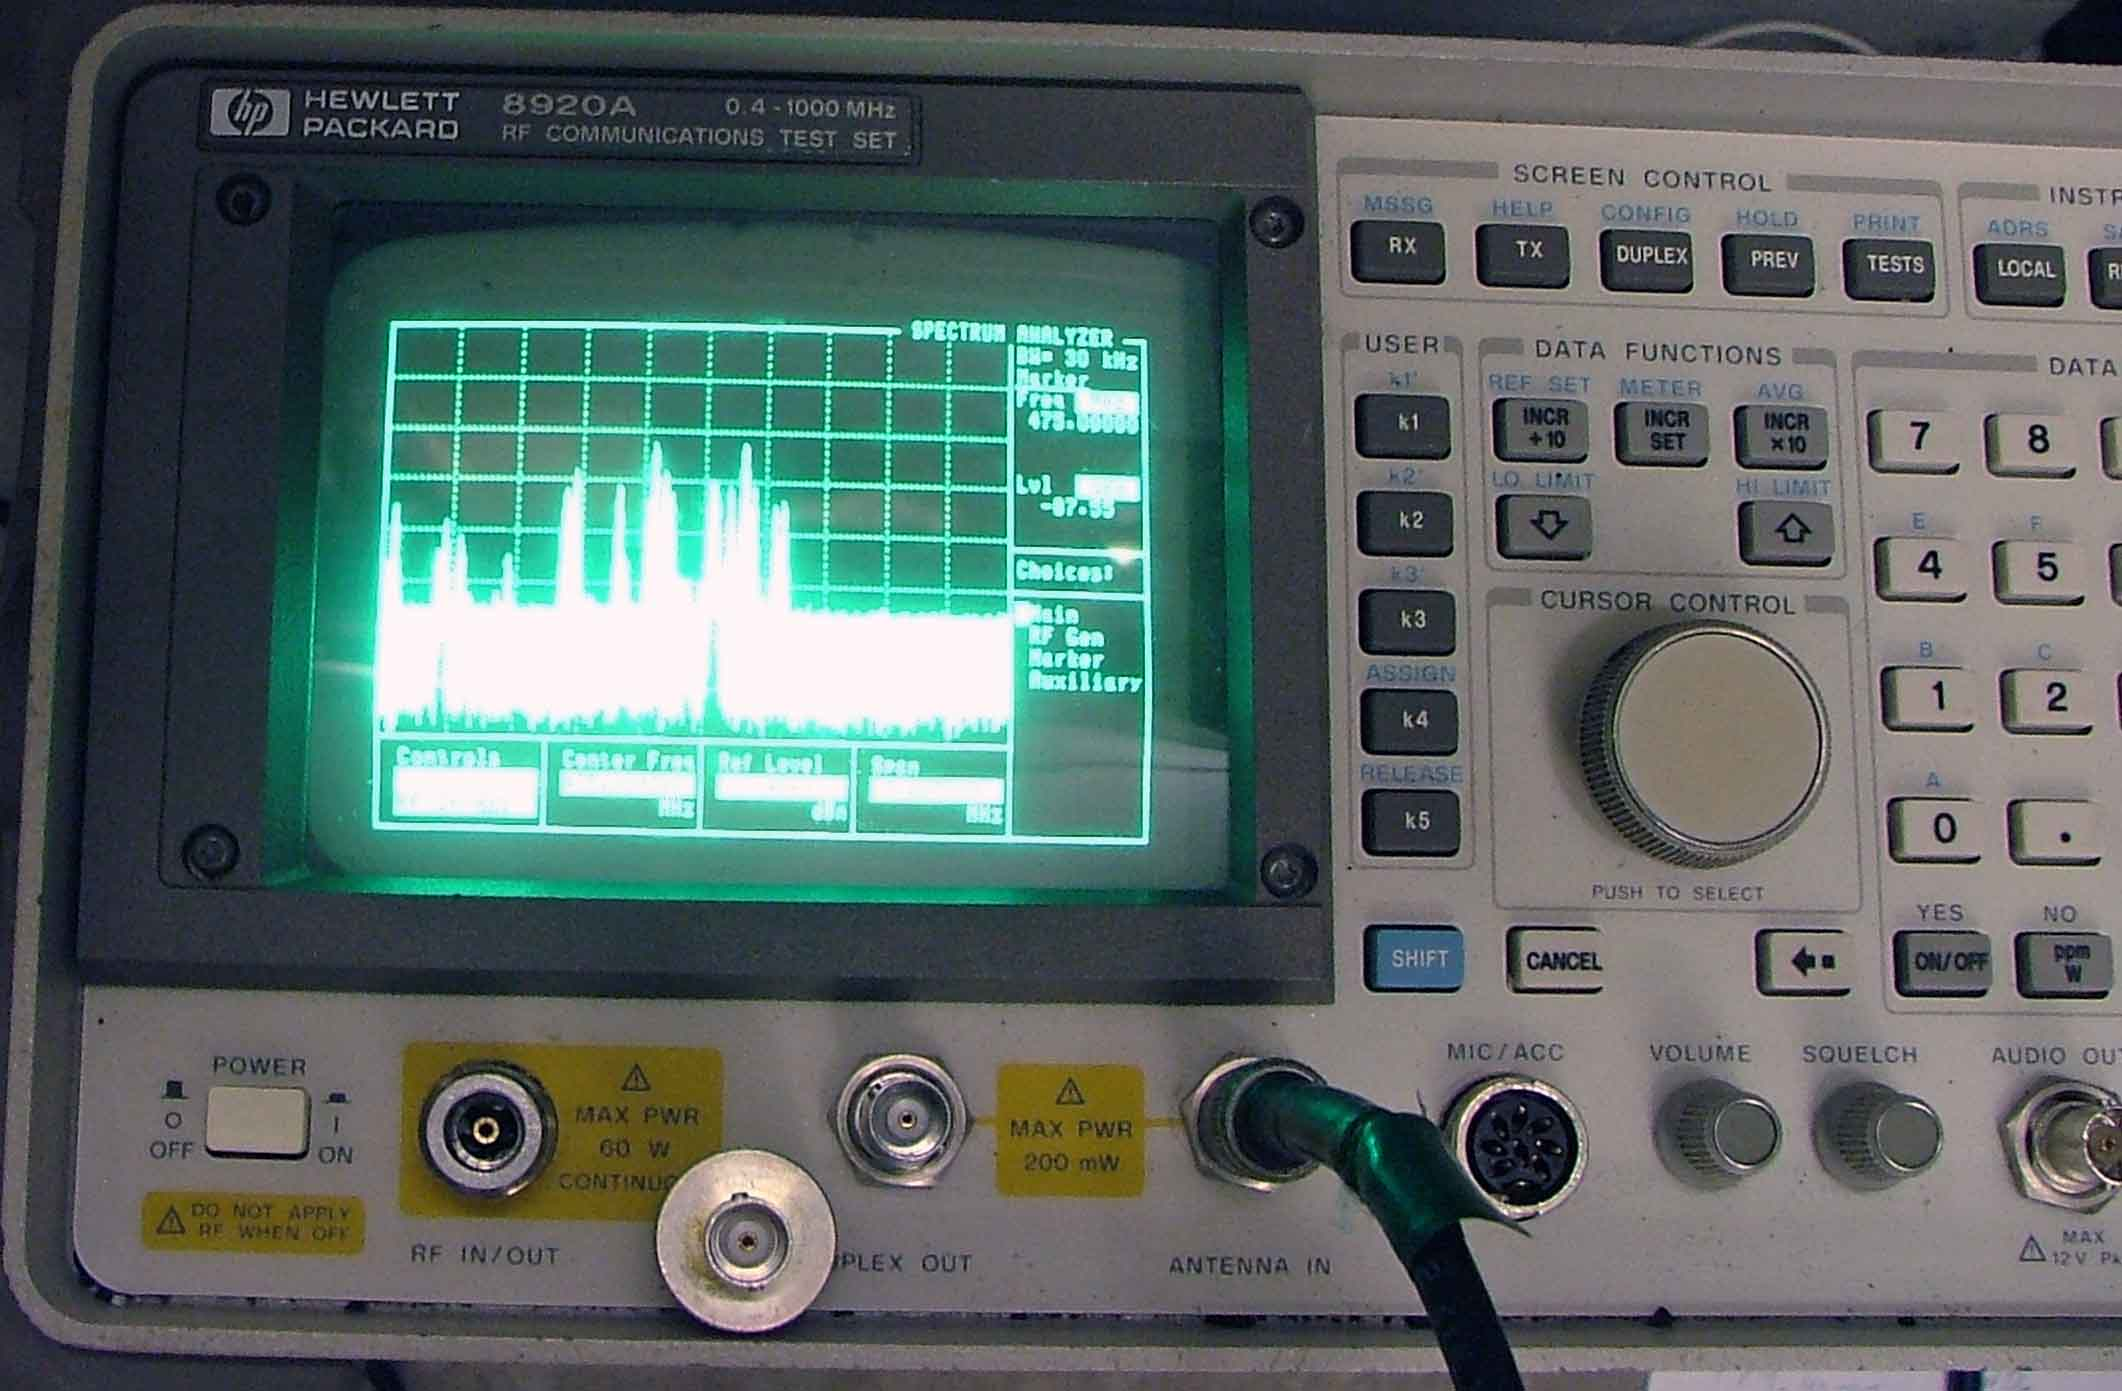 RF Interferance Troubleshooting Analysis